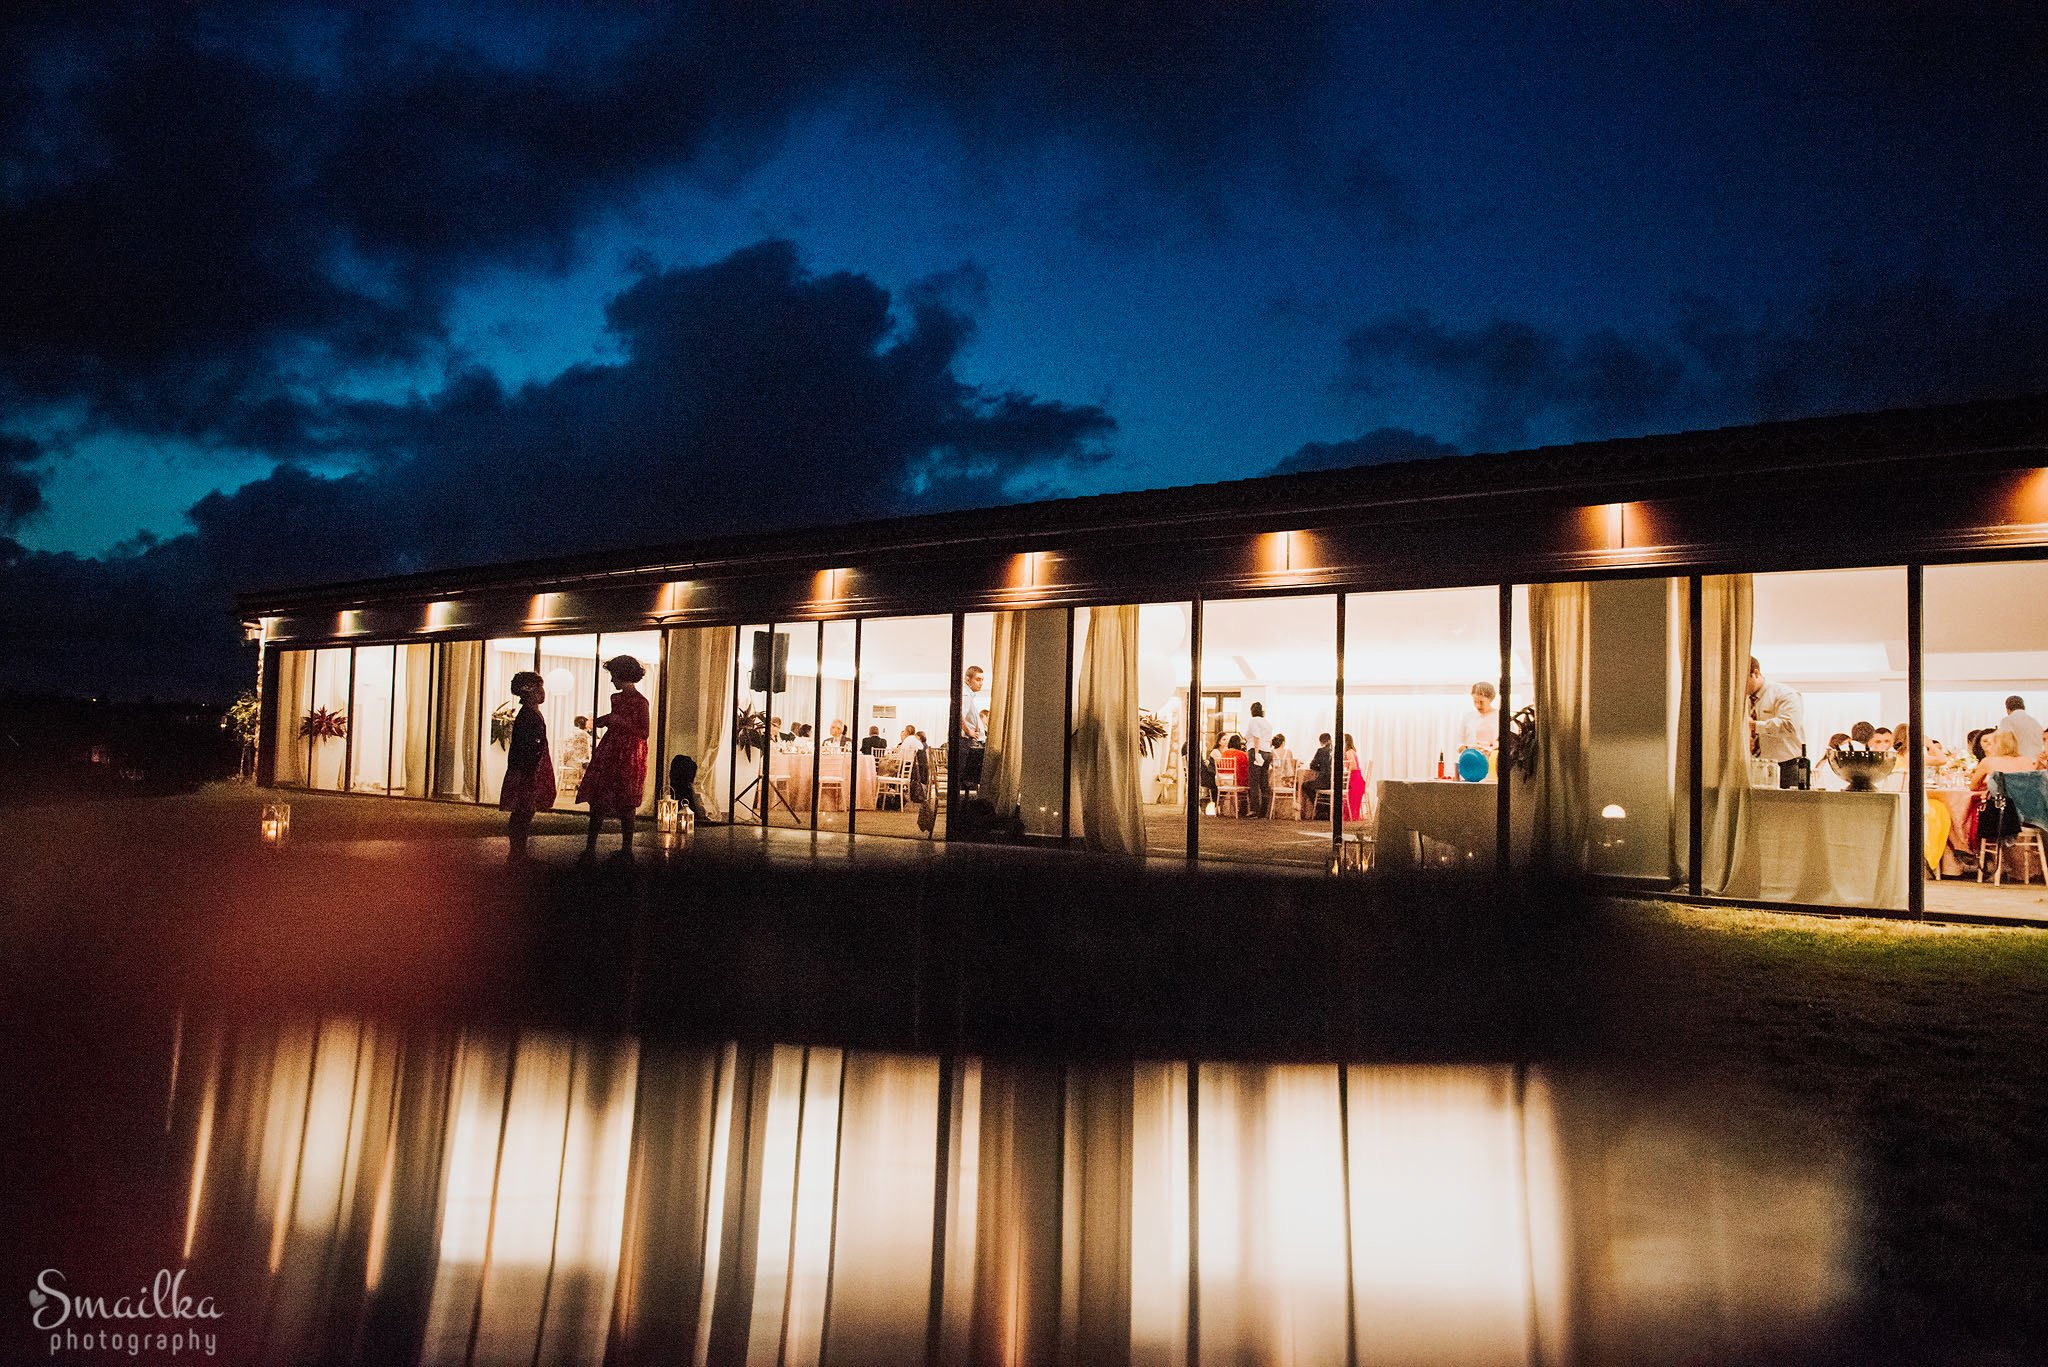 Photo of the wedding celebration venue at Black Sea Rama and its reflections